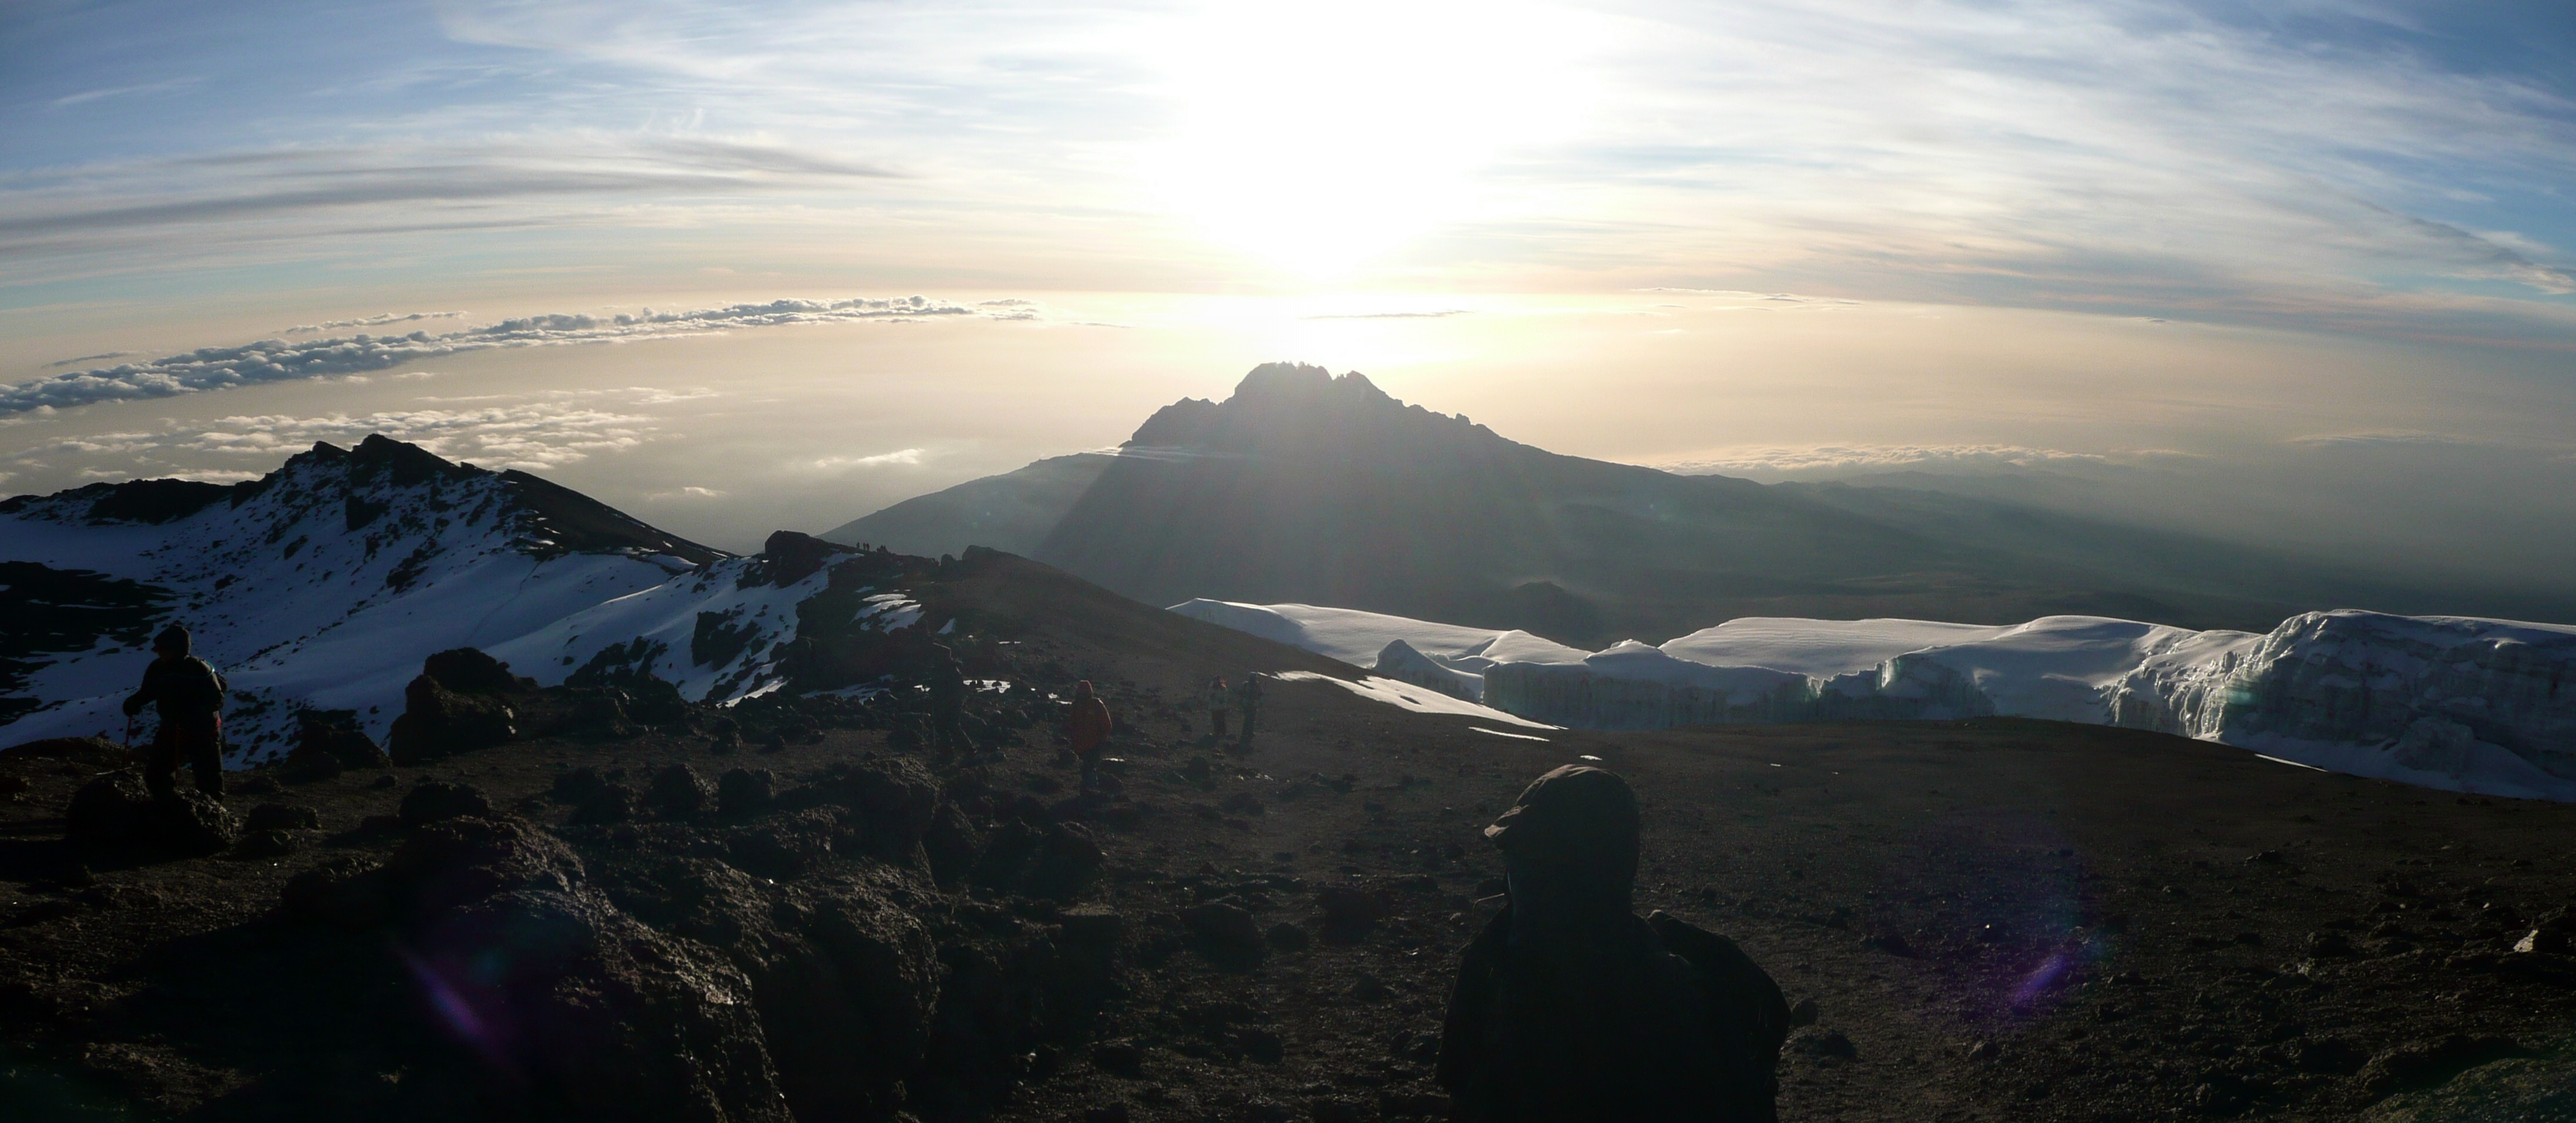 """Mawenzi Cone at sunrise from Kilimanjaro crater rim"" by Sbork - Own work. Licensed under CC BY-SA 3.0 via Wikimedia Commons - https://commons.wikimedia.org/wiki/File:Mawenzi_Cone_at_sunrise_from_Kilimanjaro_crater_rim.jpg#/media/File:Mawenzi_Cone_at_sunrise_from_Kilimanjaro_crater_rim.jpg"